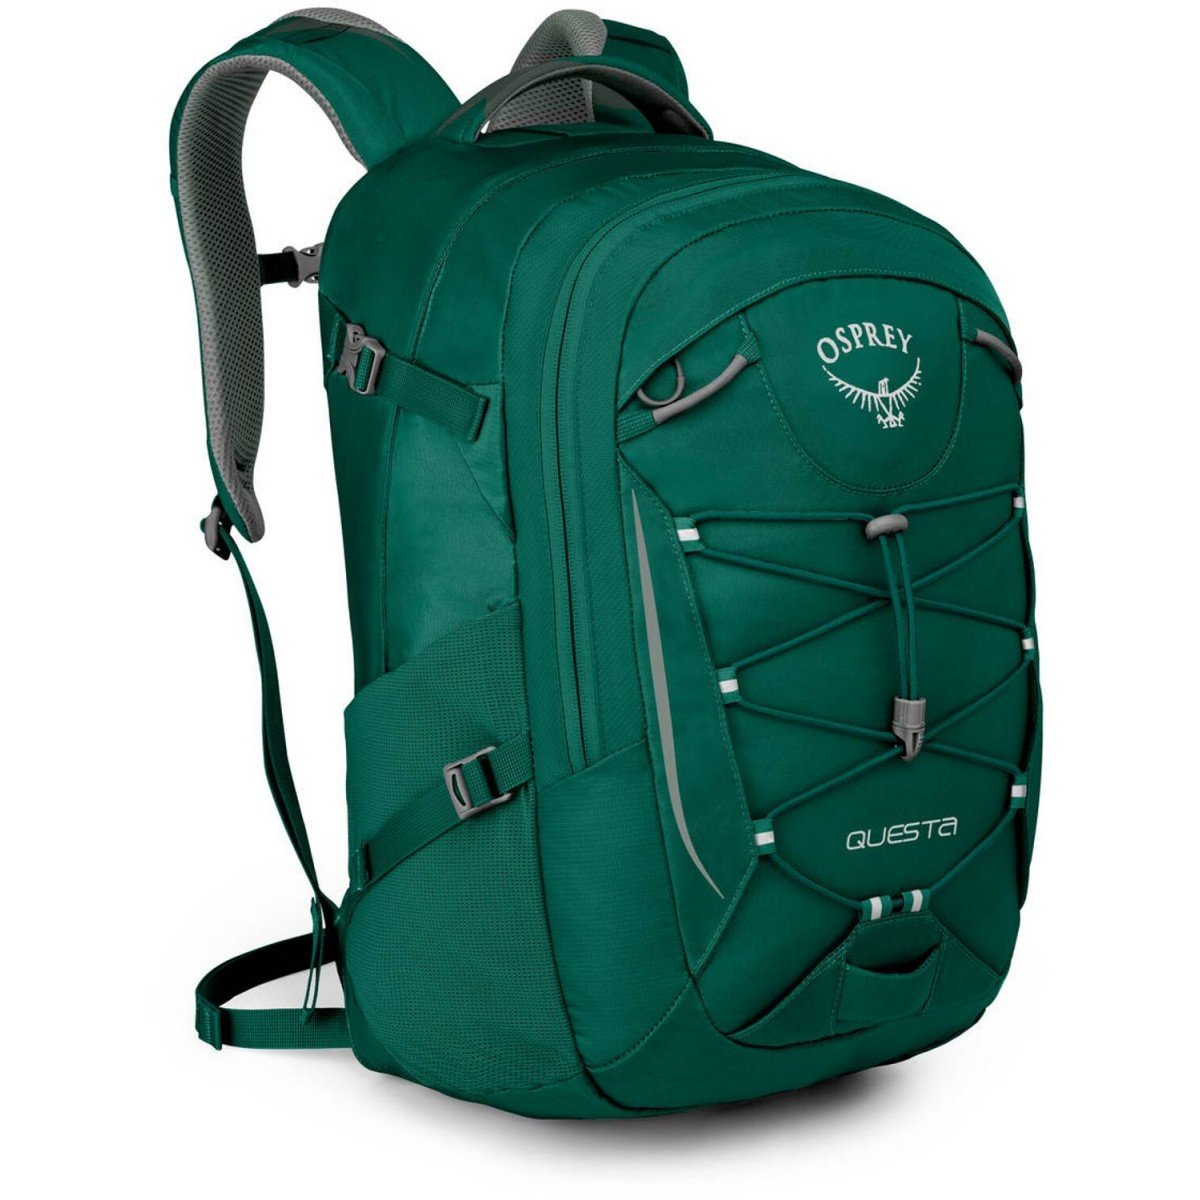 Рюкзак Osprey Questa 27 Tropical Green 009.1799